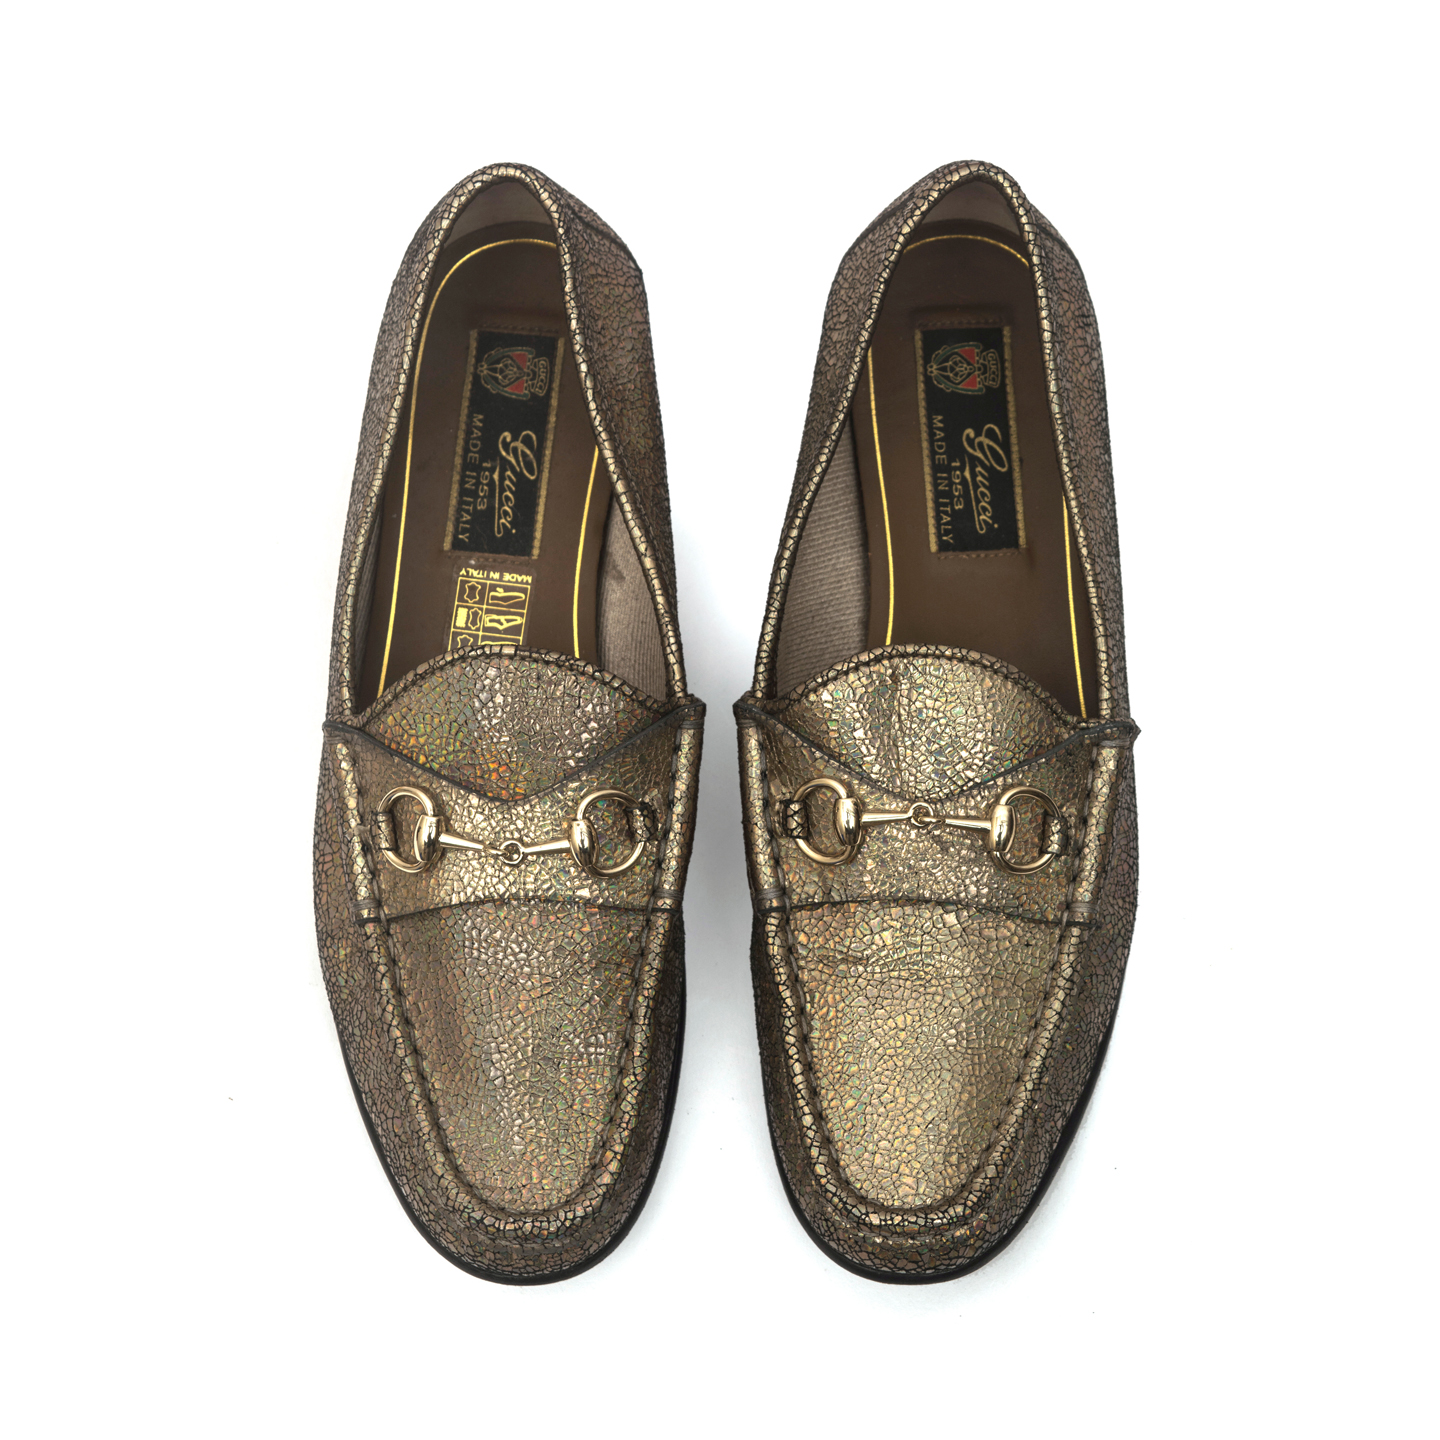 6f986a92727d ... Gucci 60th Anniversary 1953 Horsebit Metallic Loafer Size 37 ...